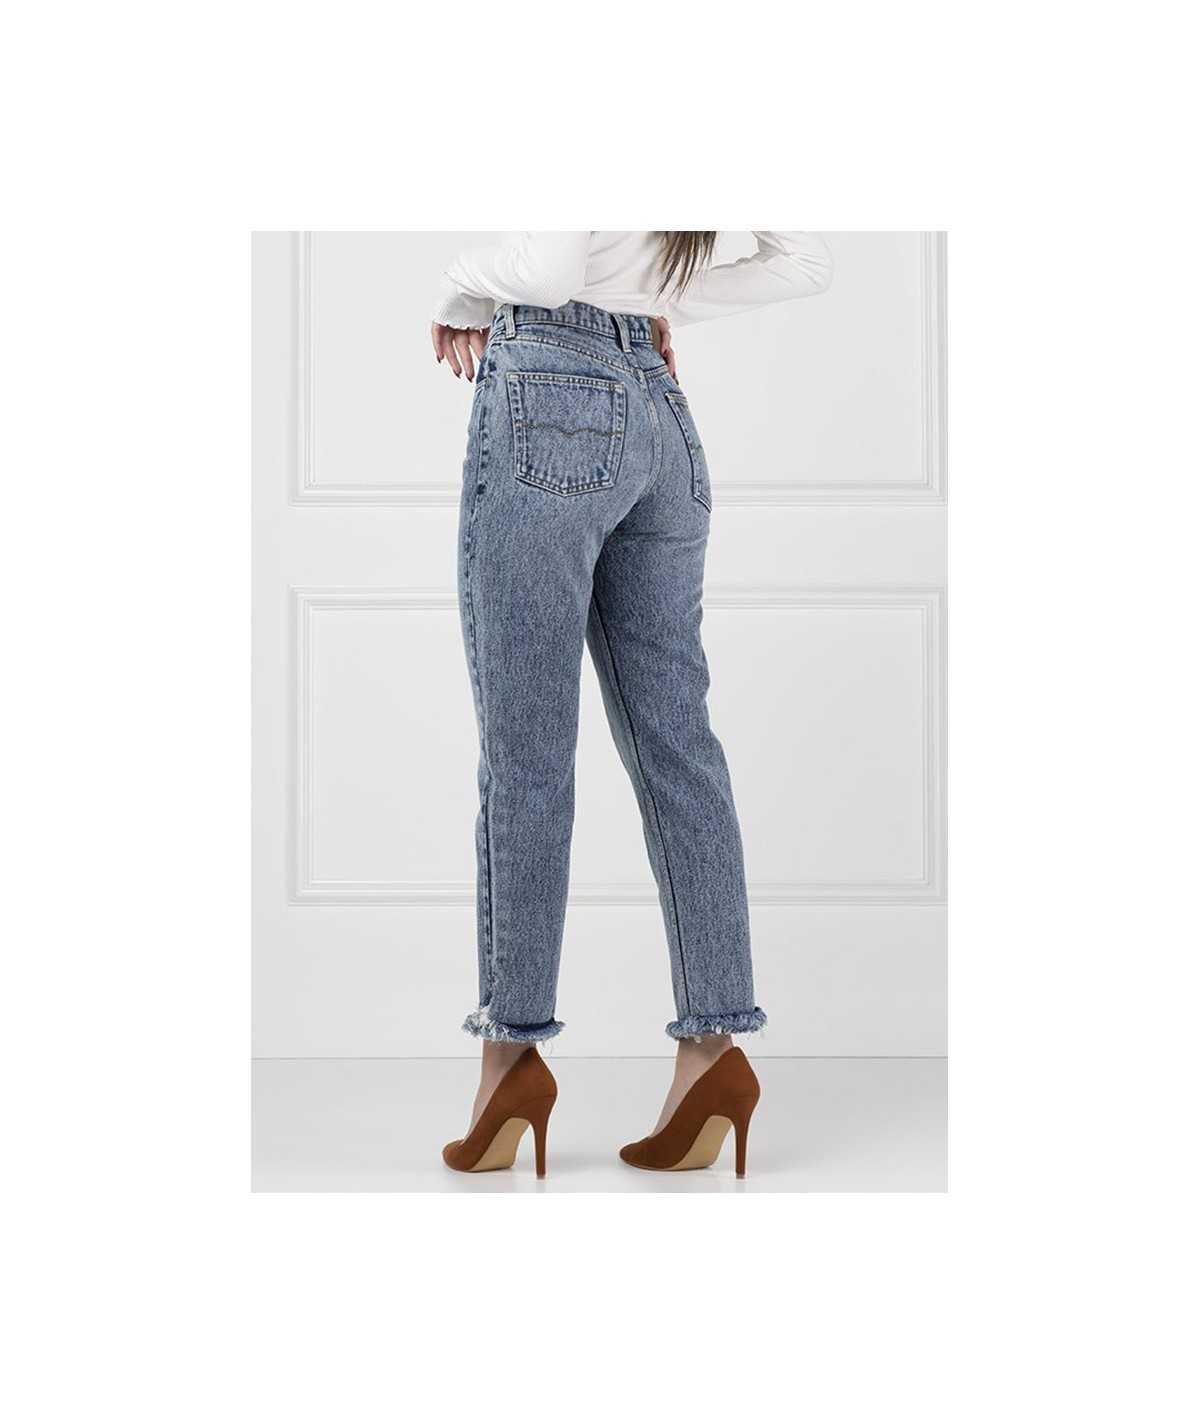 Pormenores Calças slim tapered Mom jeans - My Love Aly John